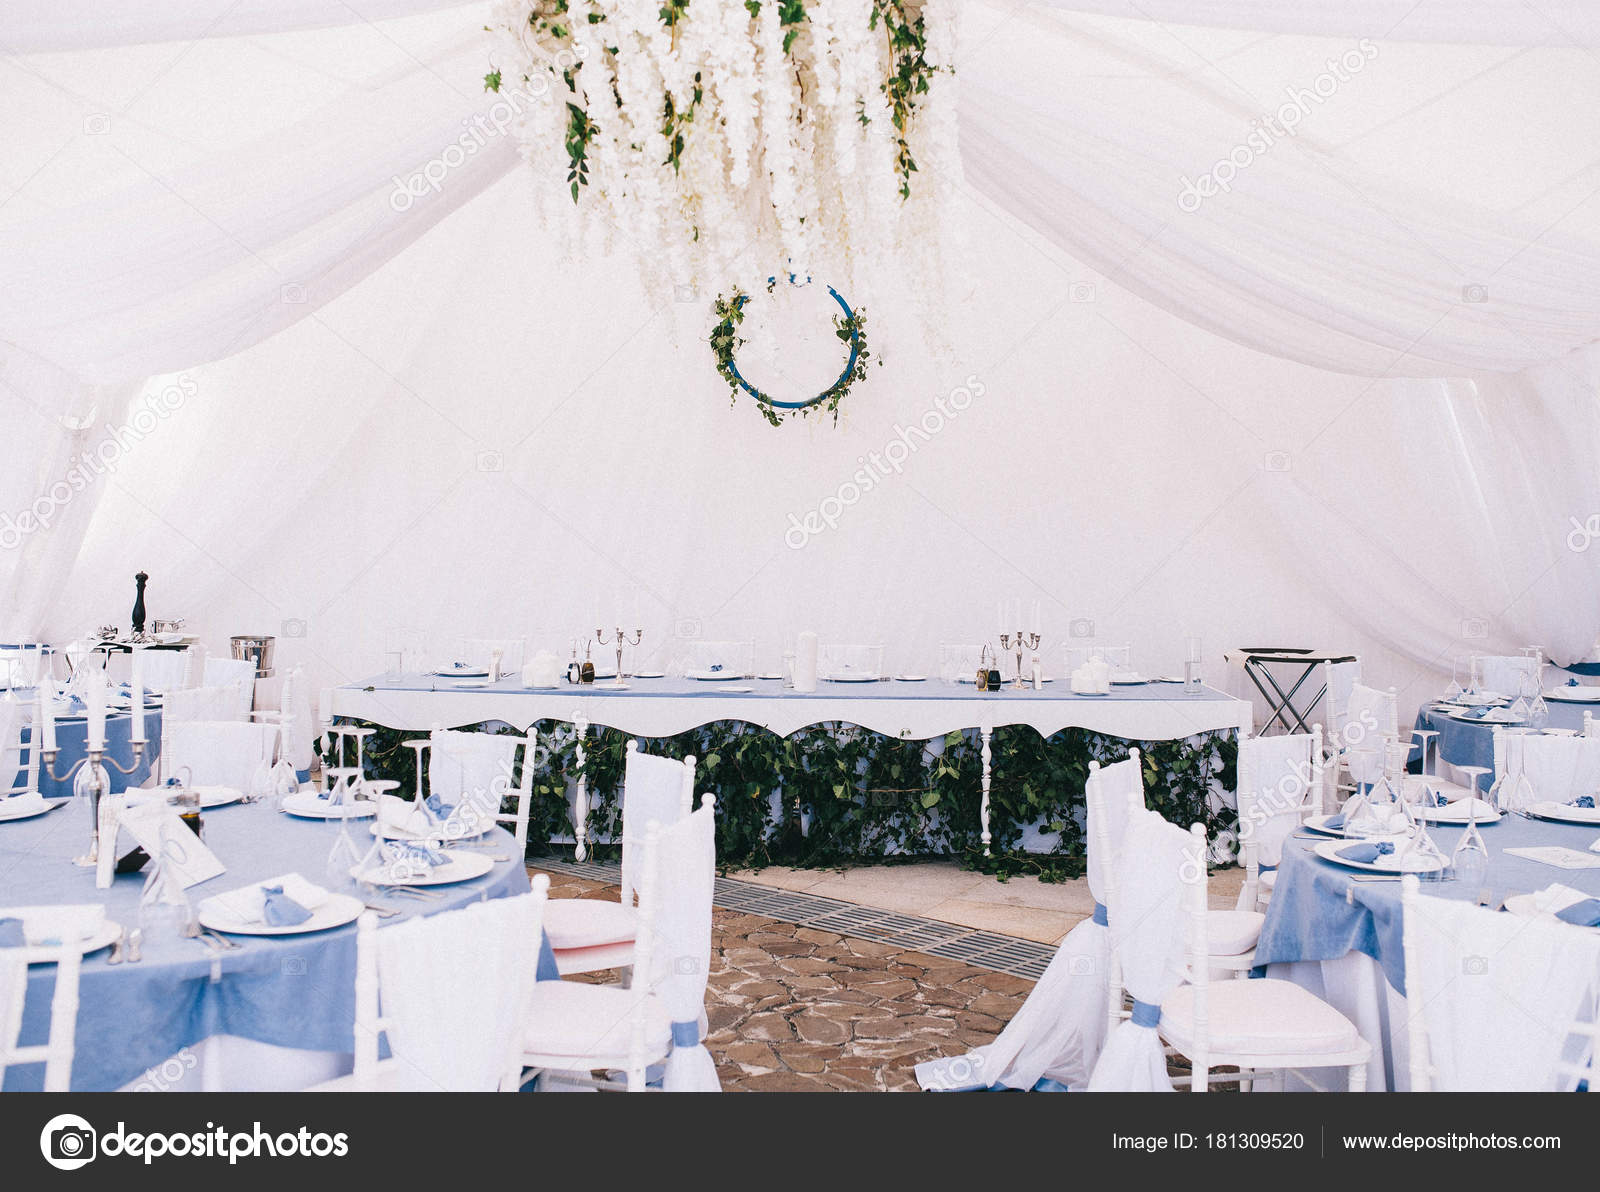 Beautiful wedding table setting and wedding decor with cutlery in light and blue tones u2014 Photo by Aksinyaeskova & Beautiful Wedding Table Setting Wedding Decor Cutlery Light Blue ...